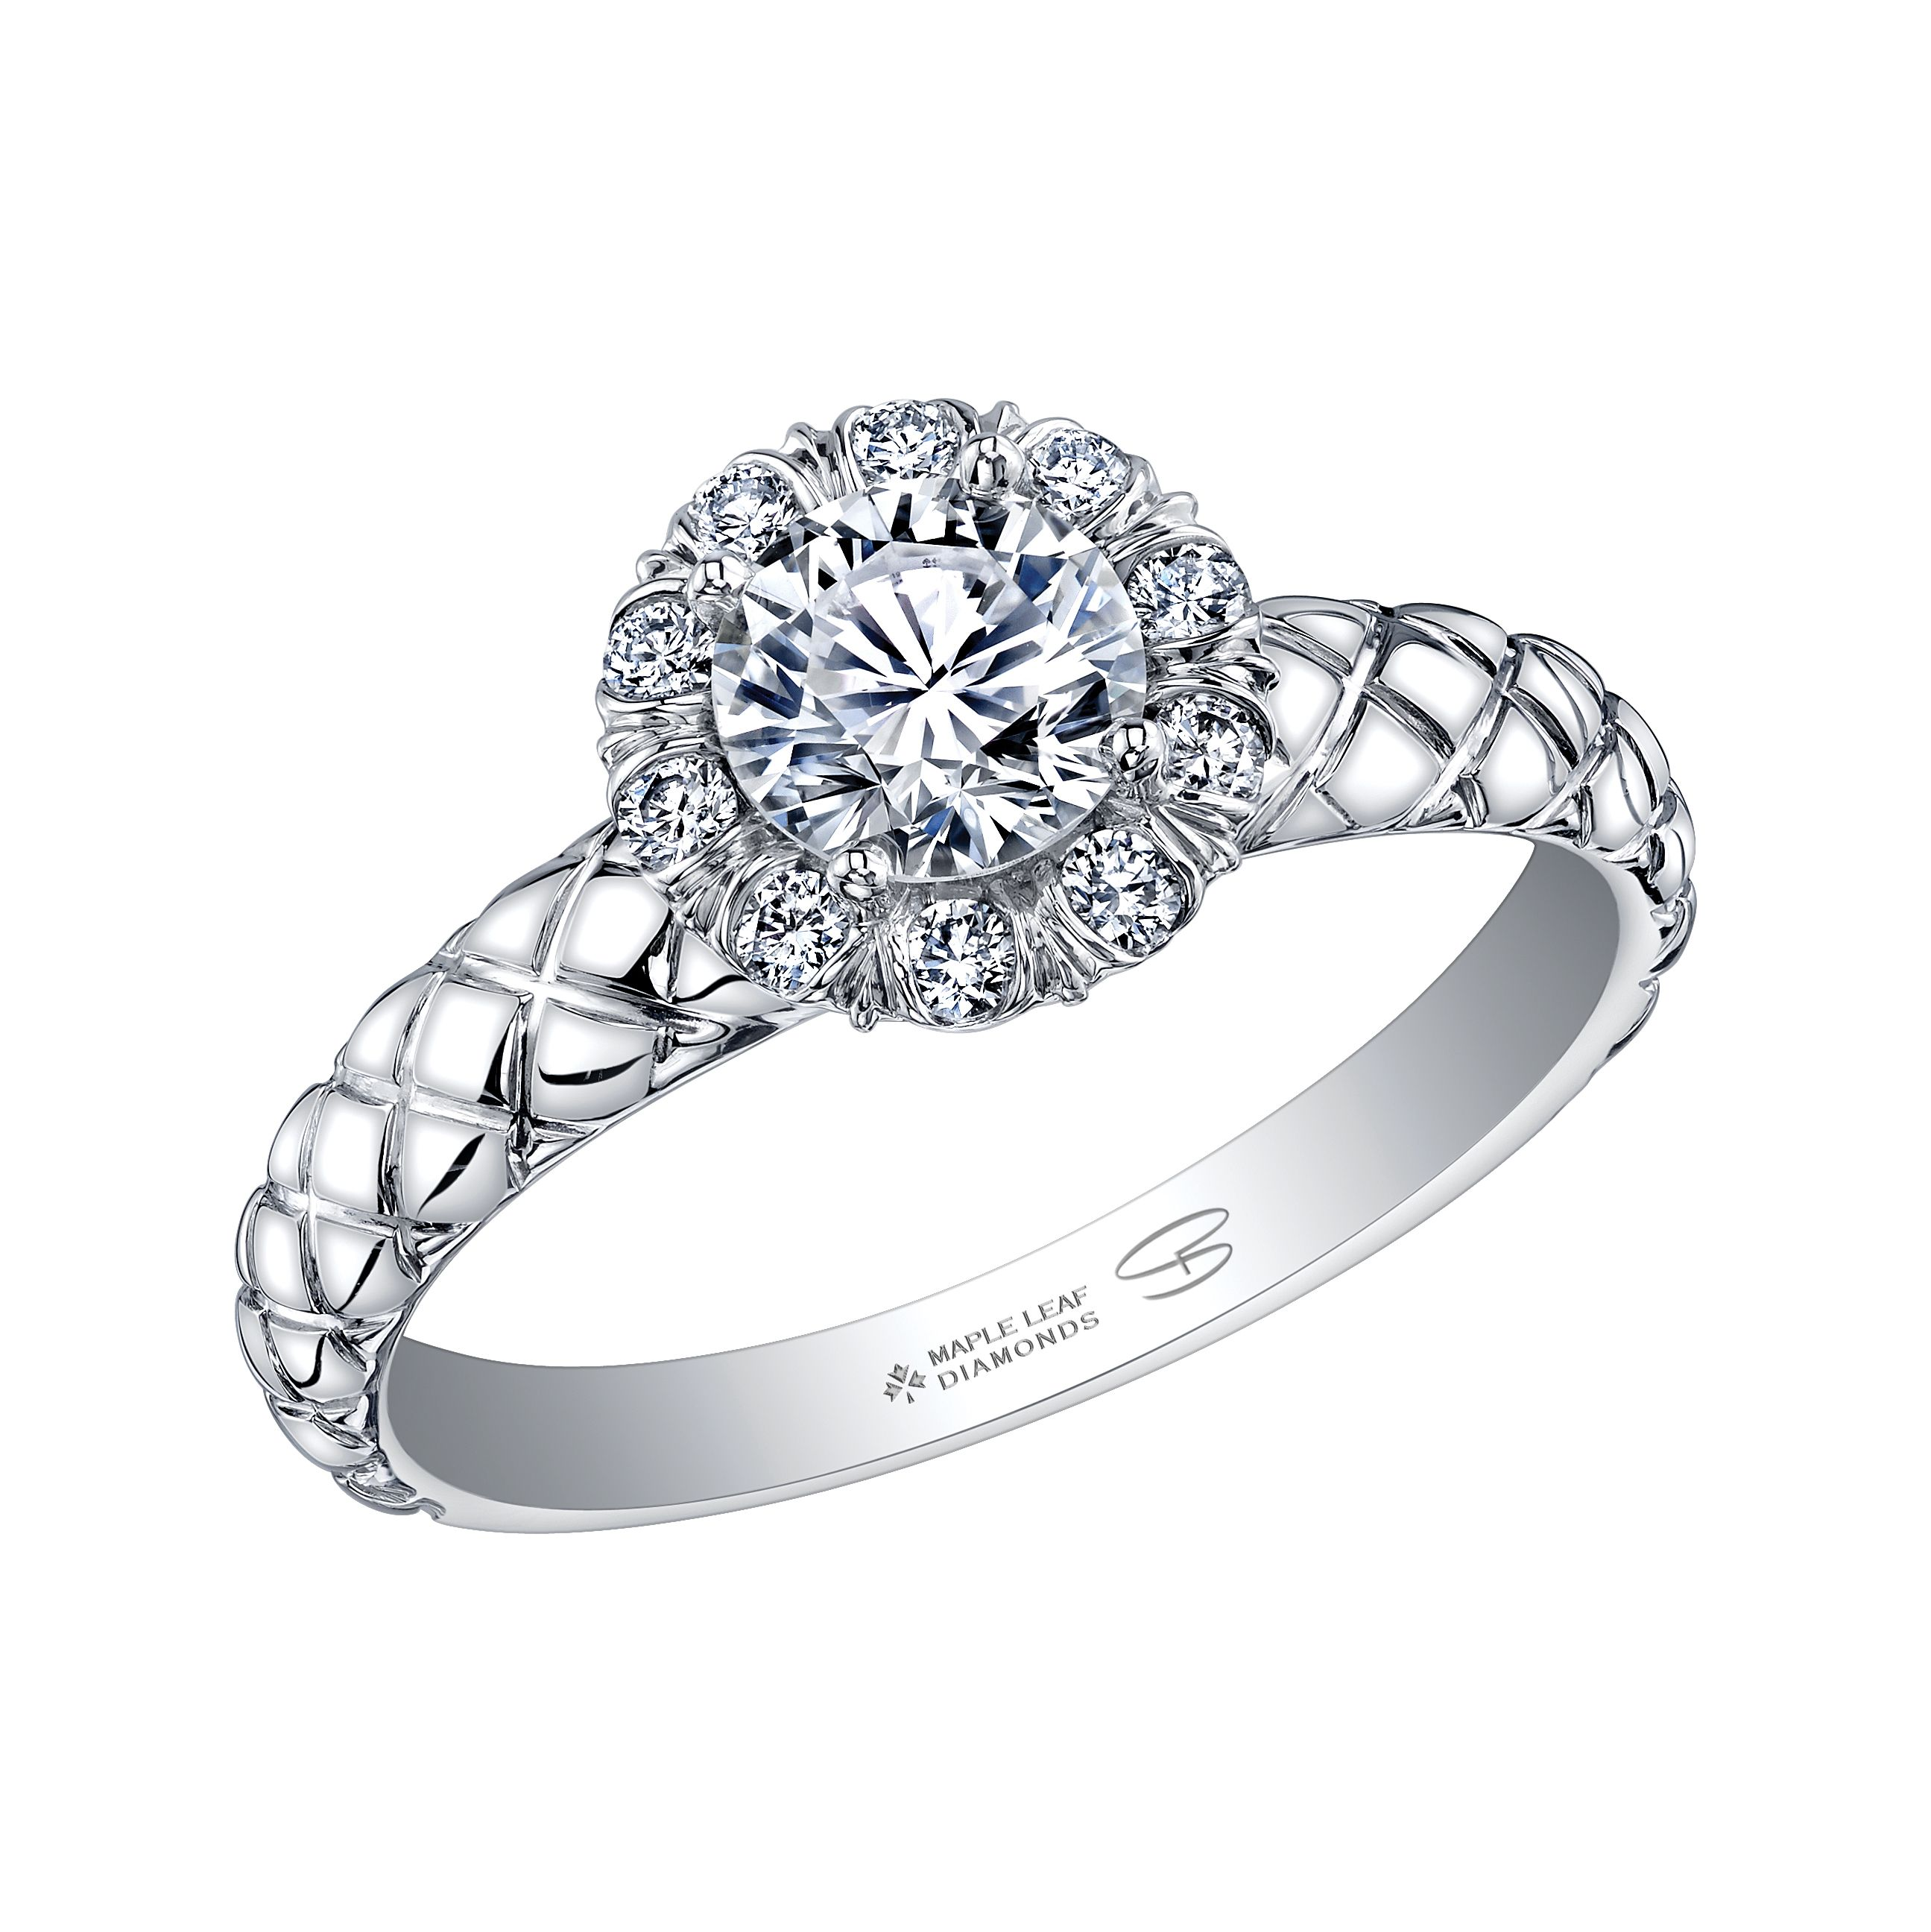 Canadian winter inspired diamond halo engagement ring with